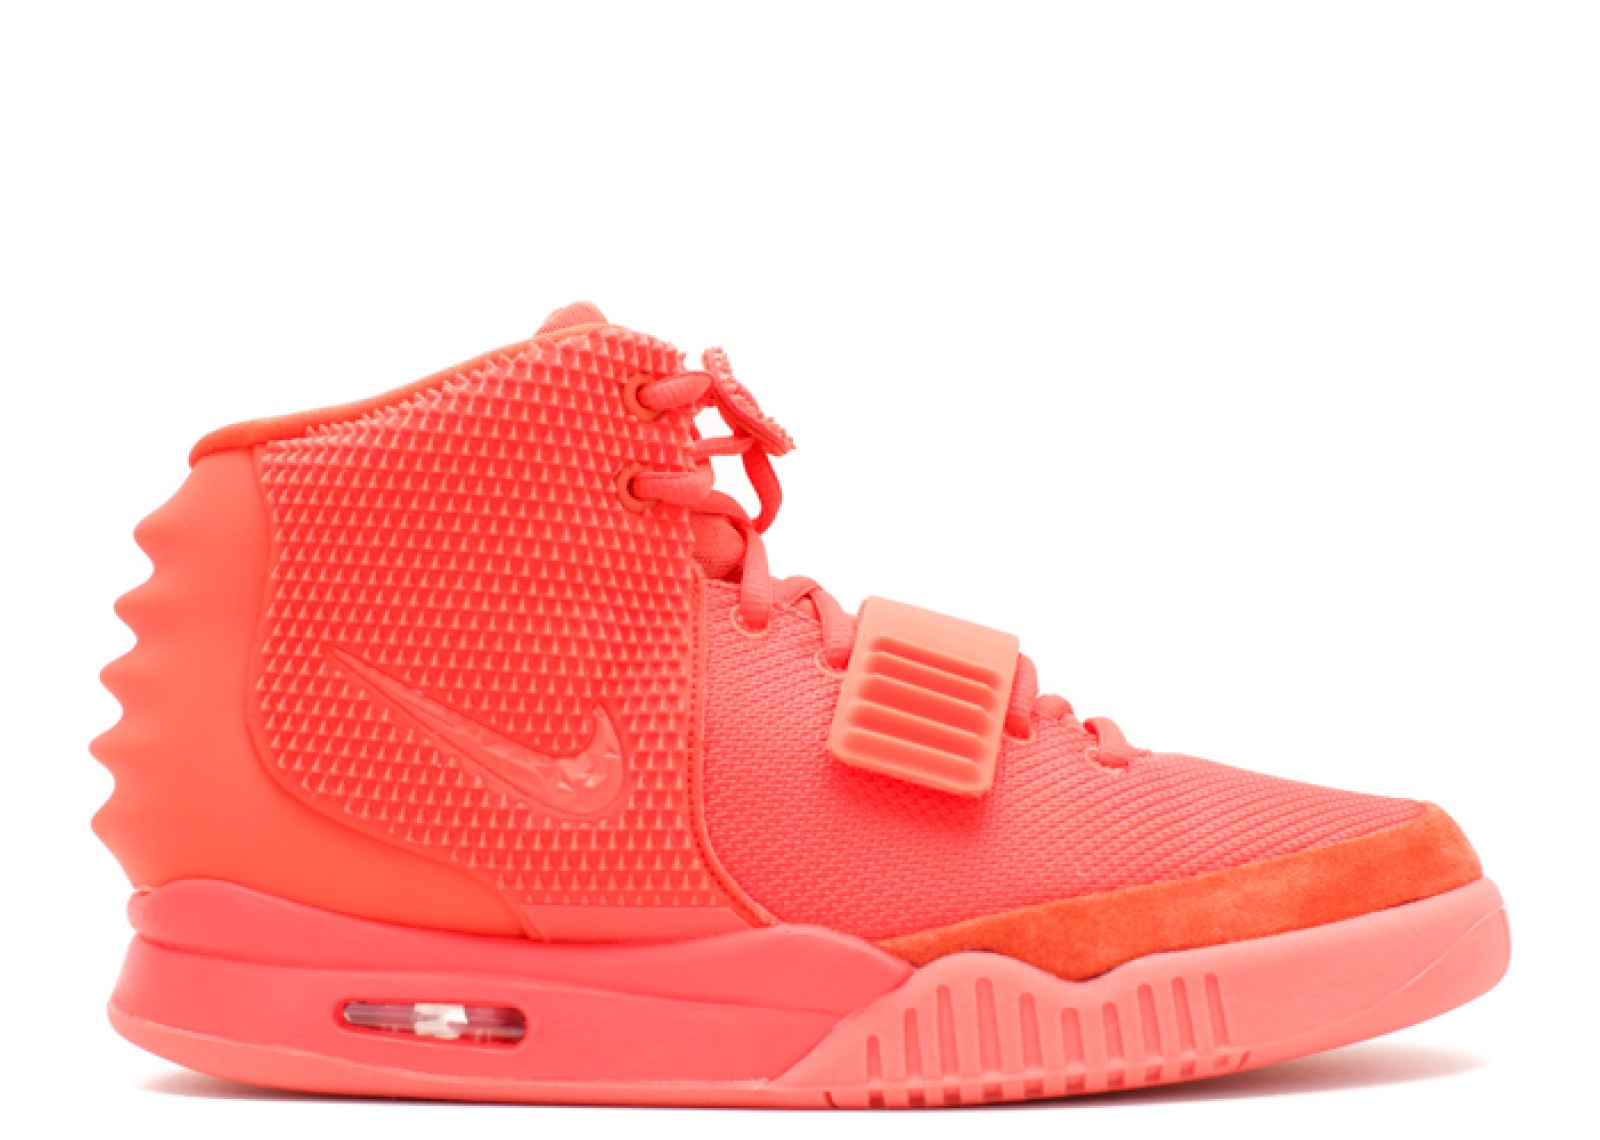 b52a51b0ab8bc5 Air Yeezy 2 SP Red October Red 508214-660 - Febbuy